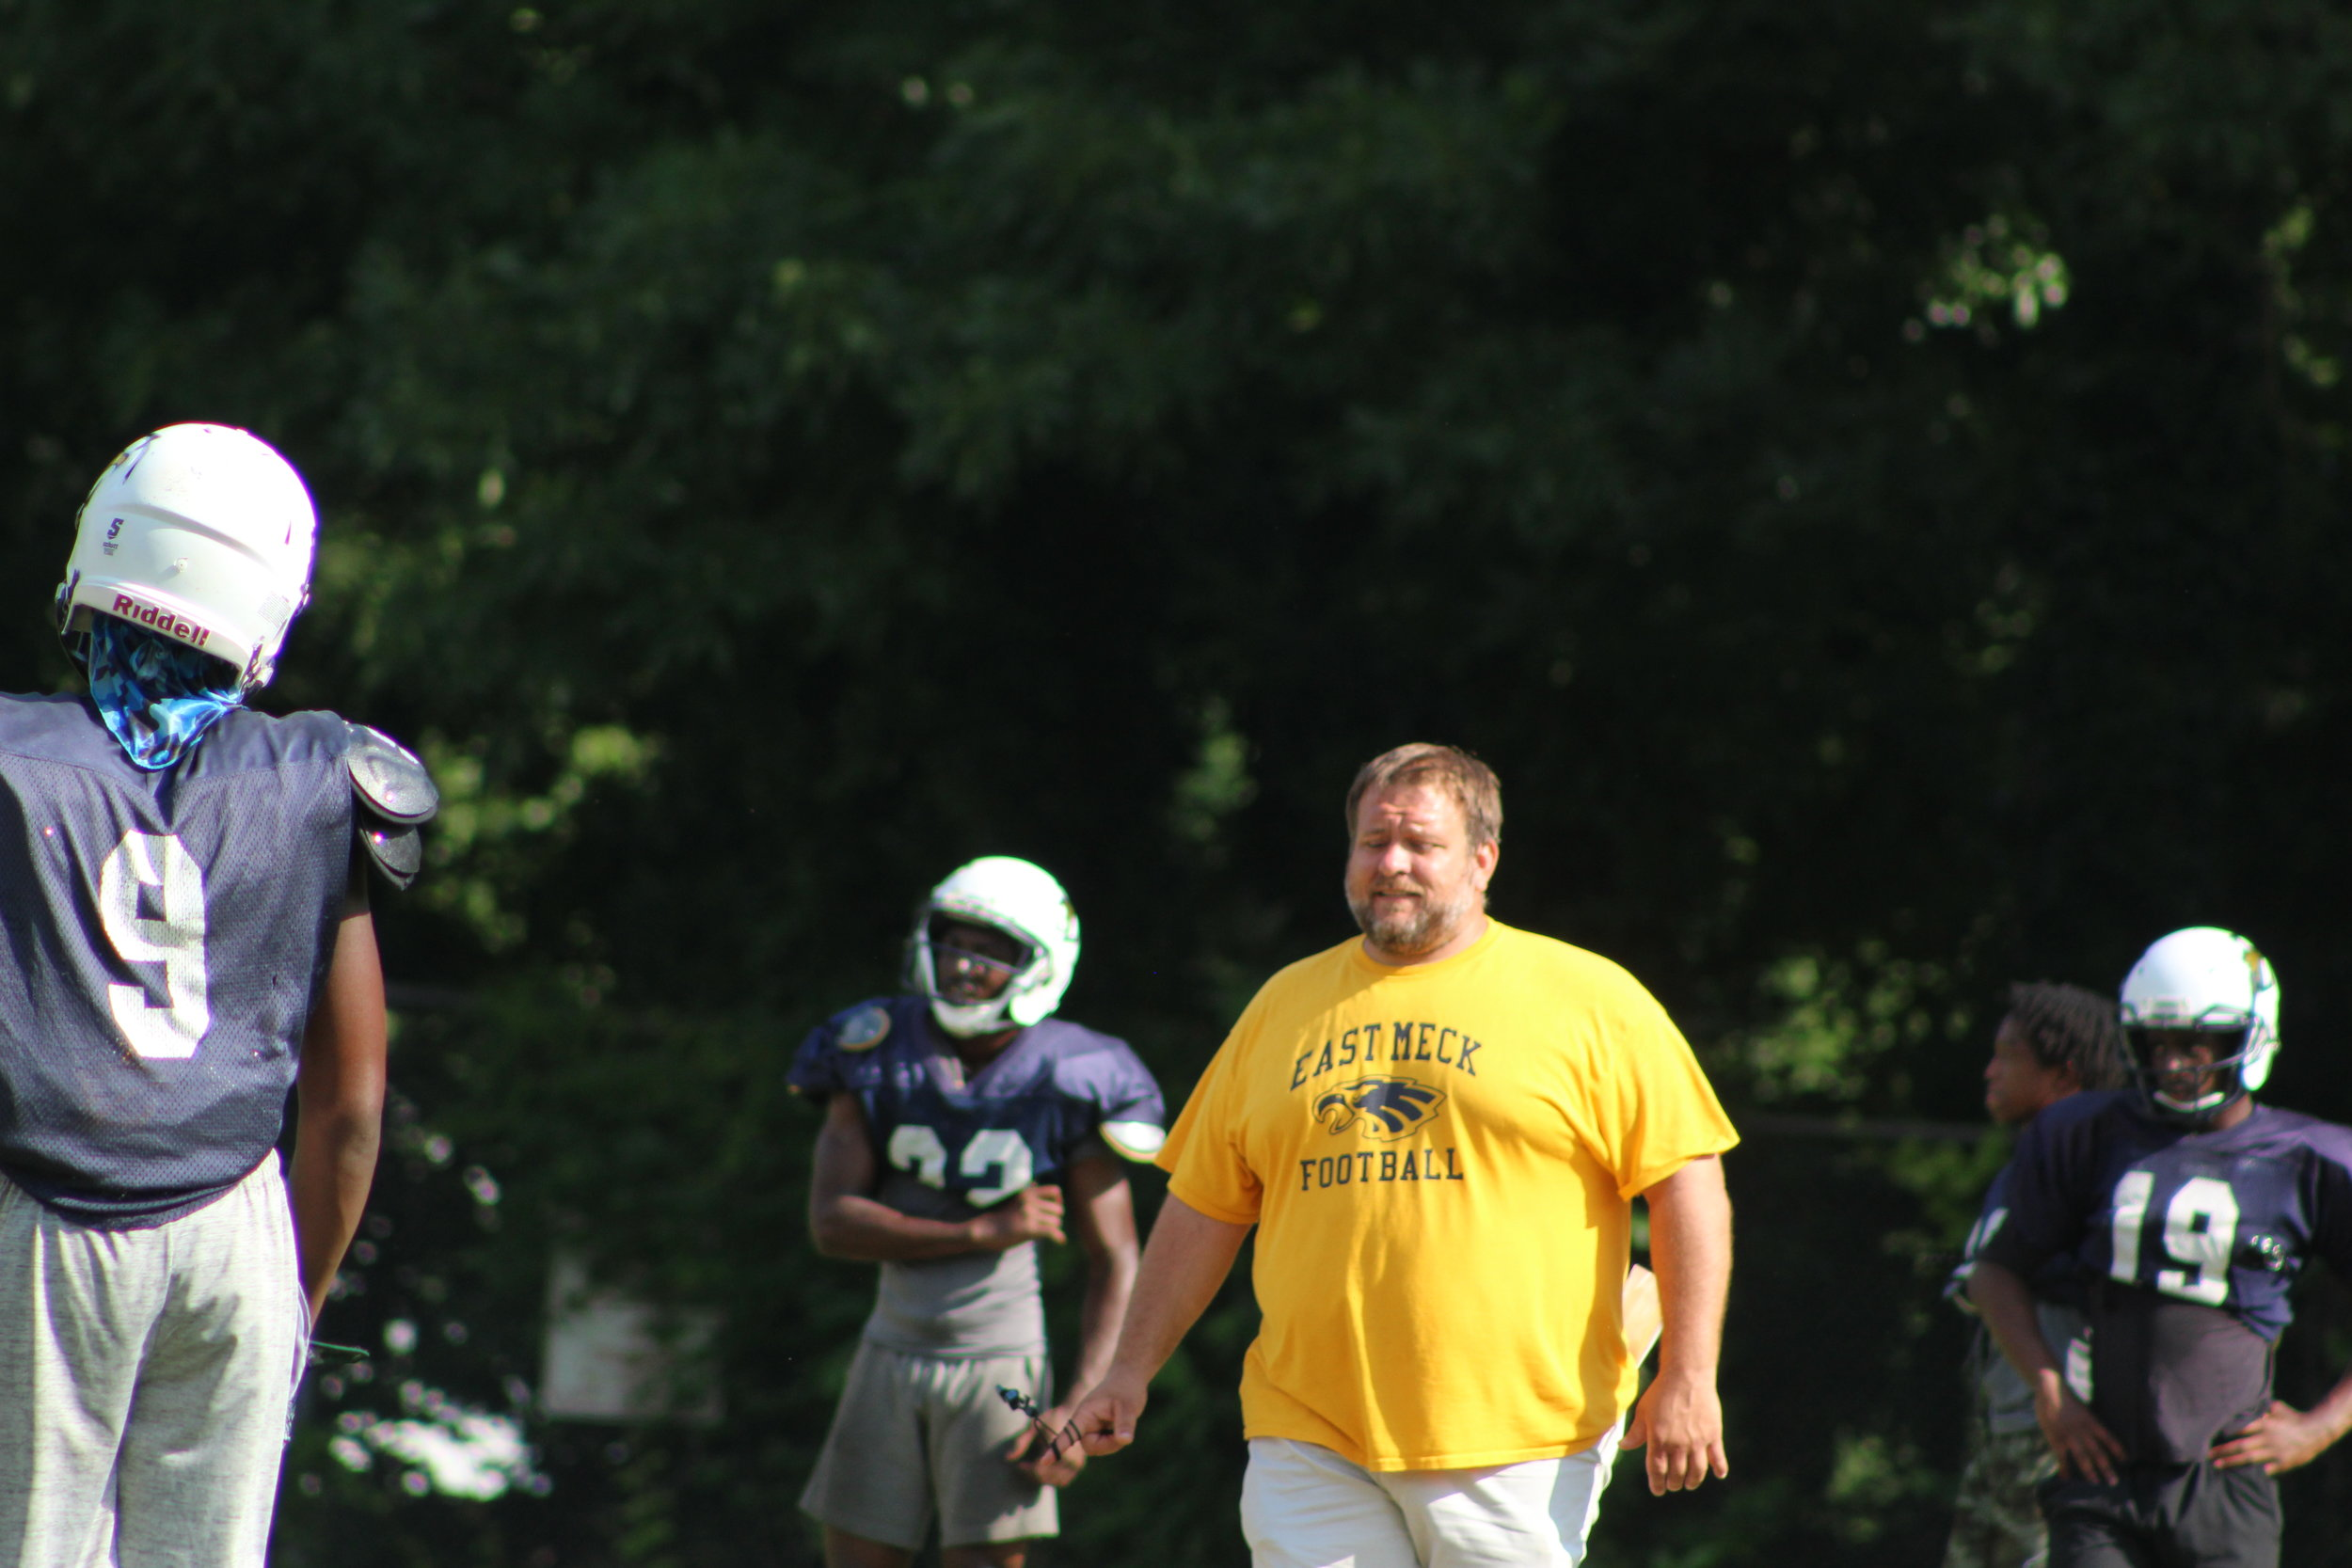 East Mecklenburg Head Coach Forshee Leads His Defense In Spring Practice